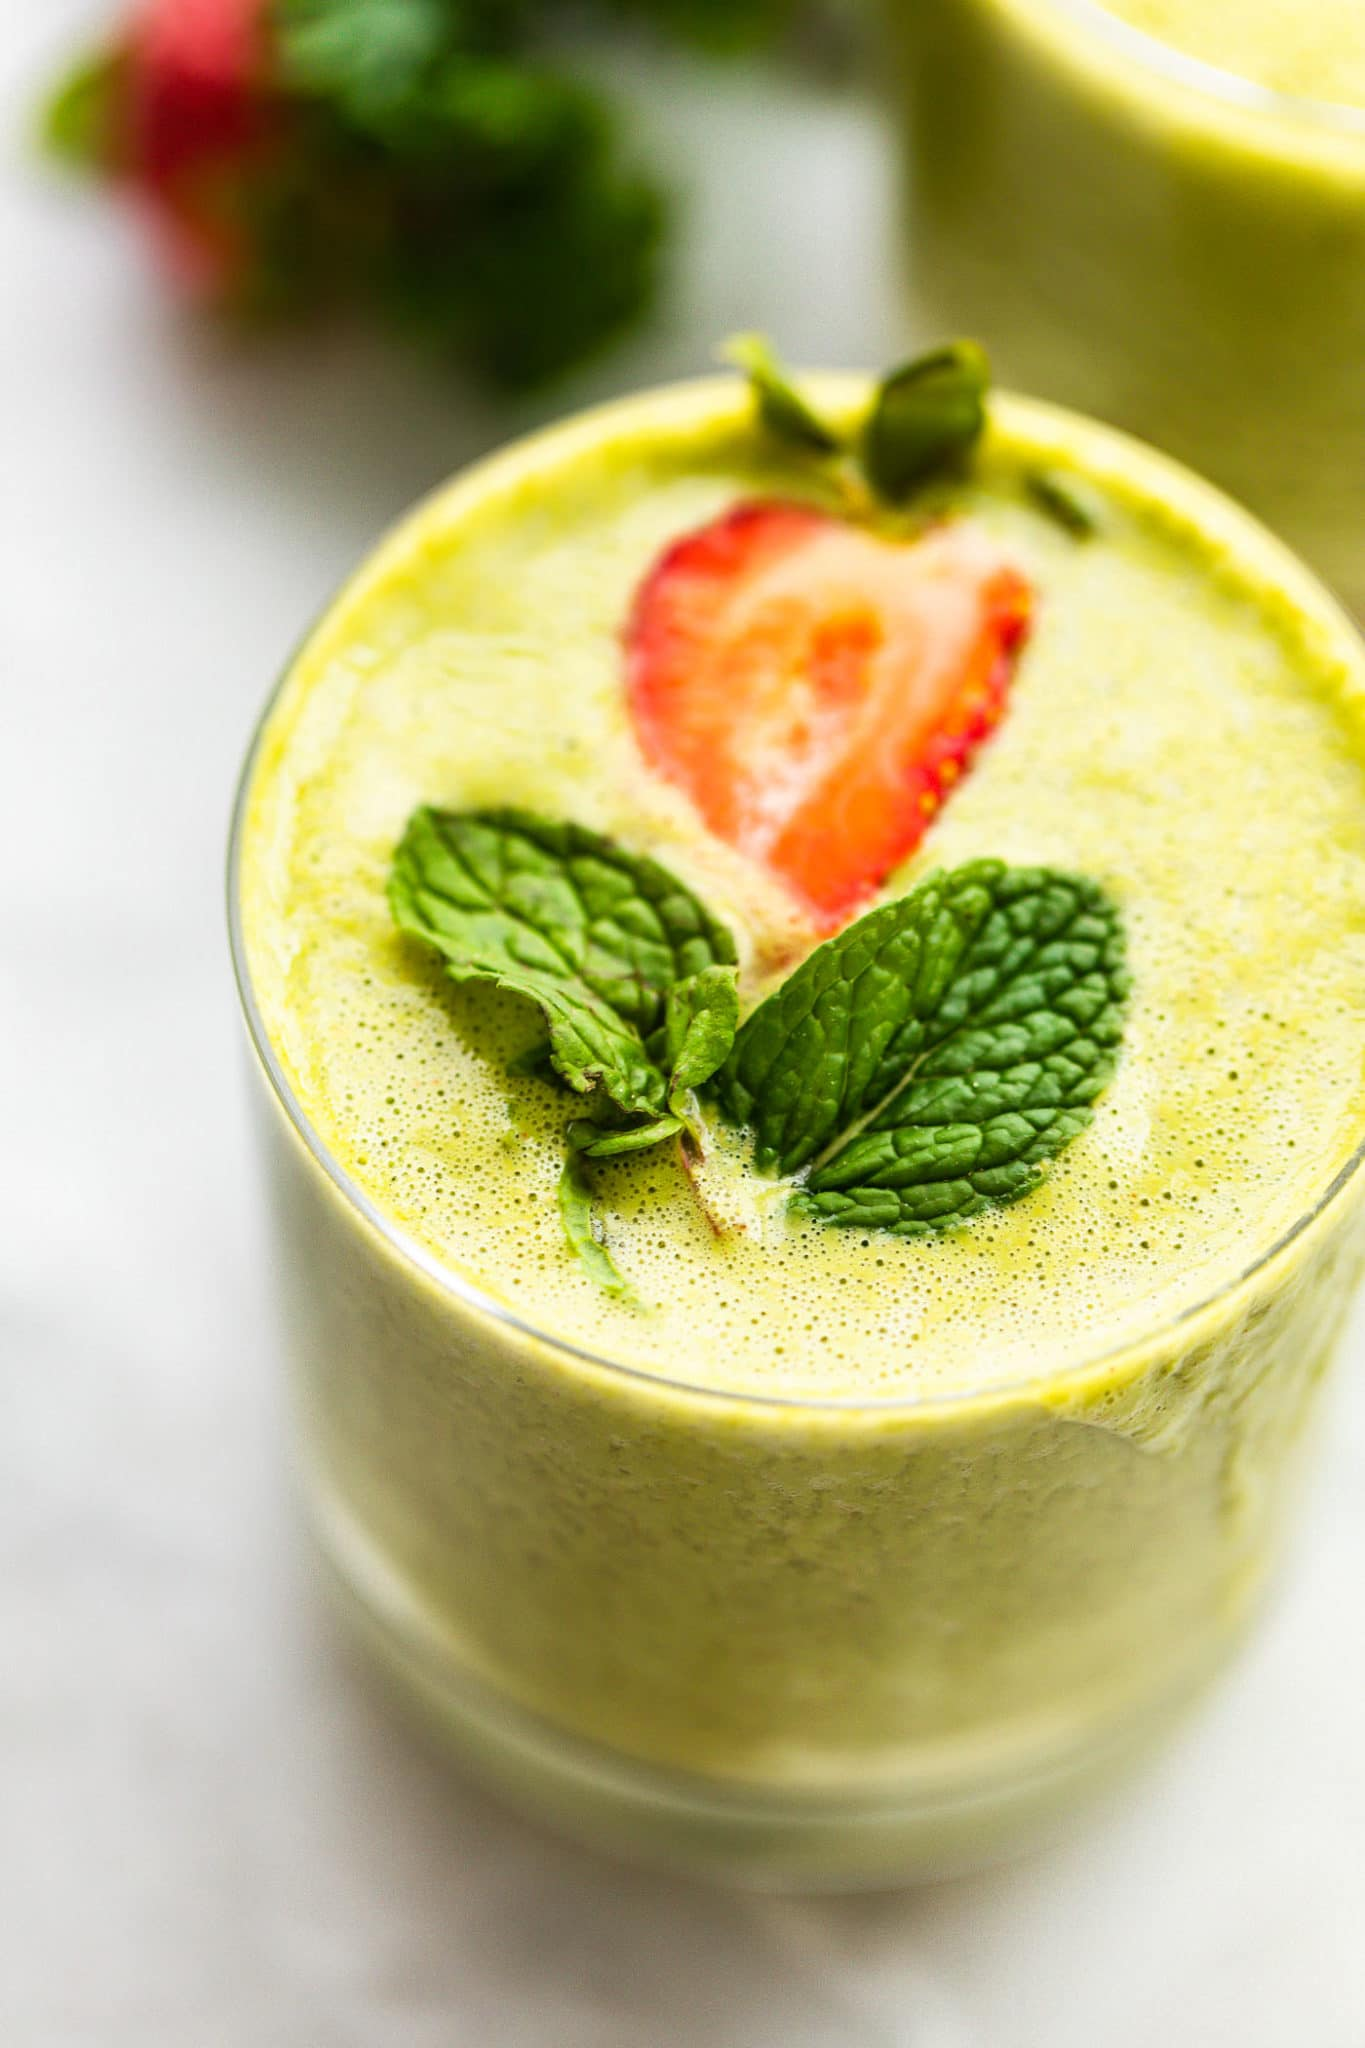 Image of a glass filled with blended super fruit kale smoothie, topped with fresh mint and strawberry